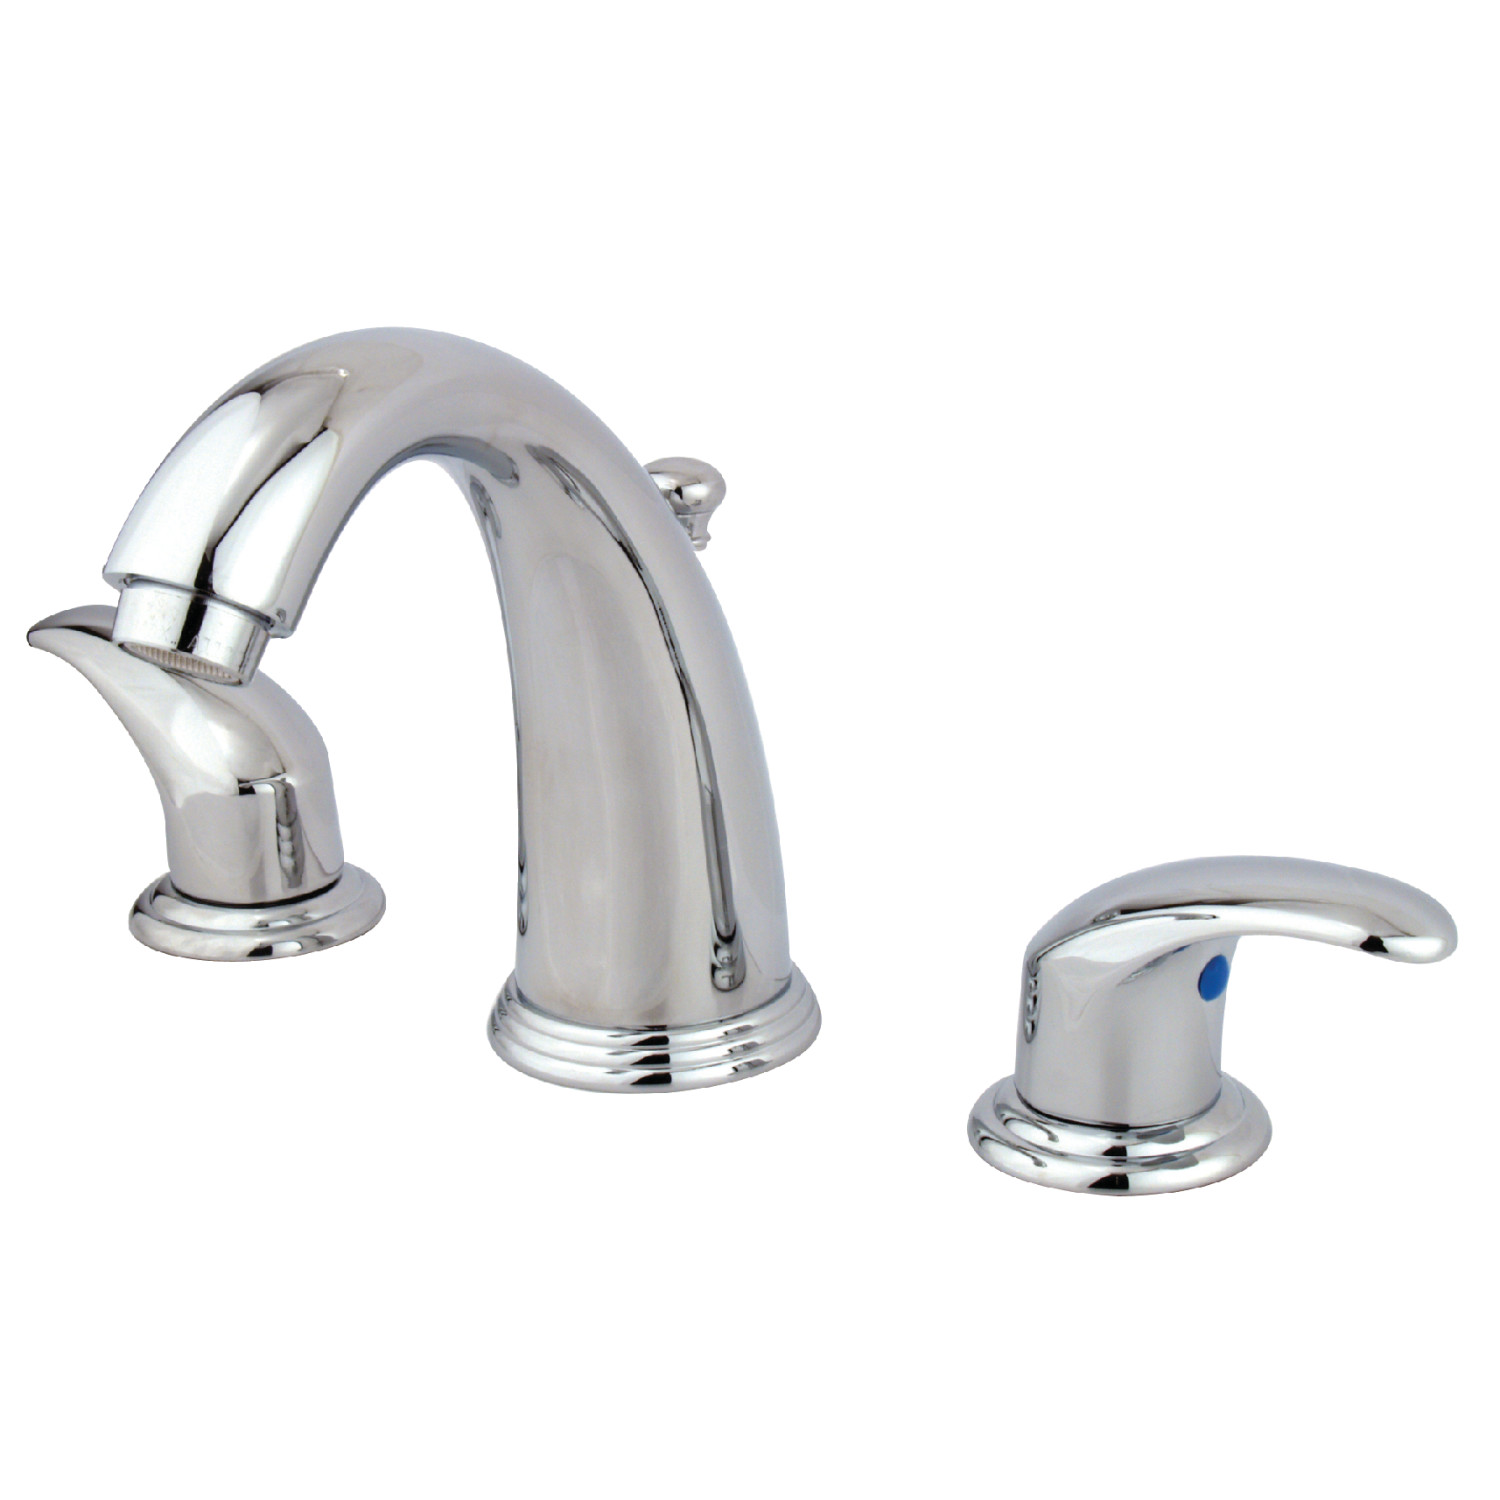 Traditional Two-Handle 3-Hole Deck Mounted Widespread Bathroom Faucet with Plastic Pop-Up in Polished Chrome with Four Finish Option